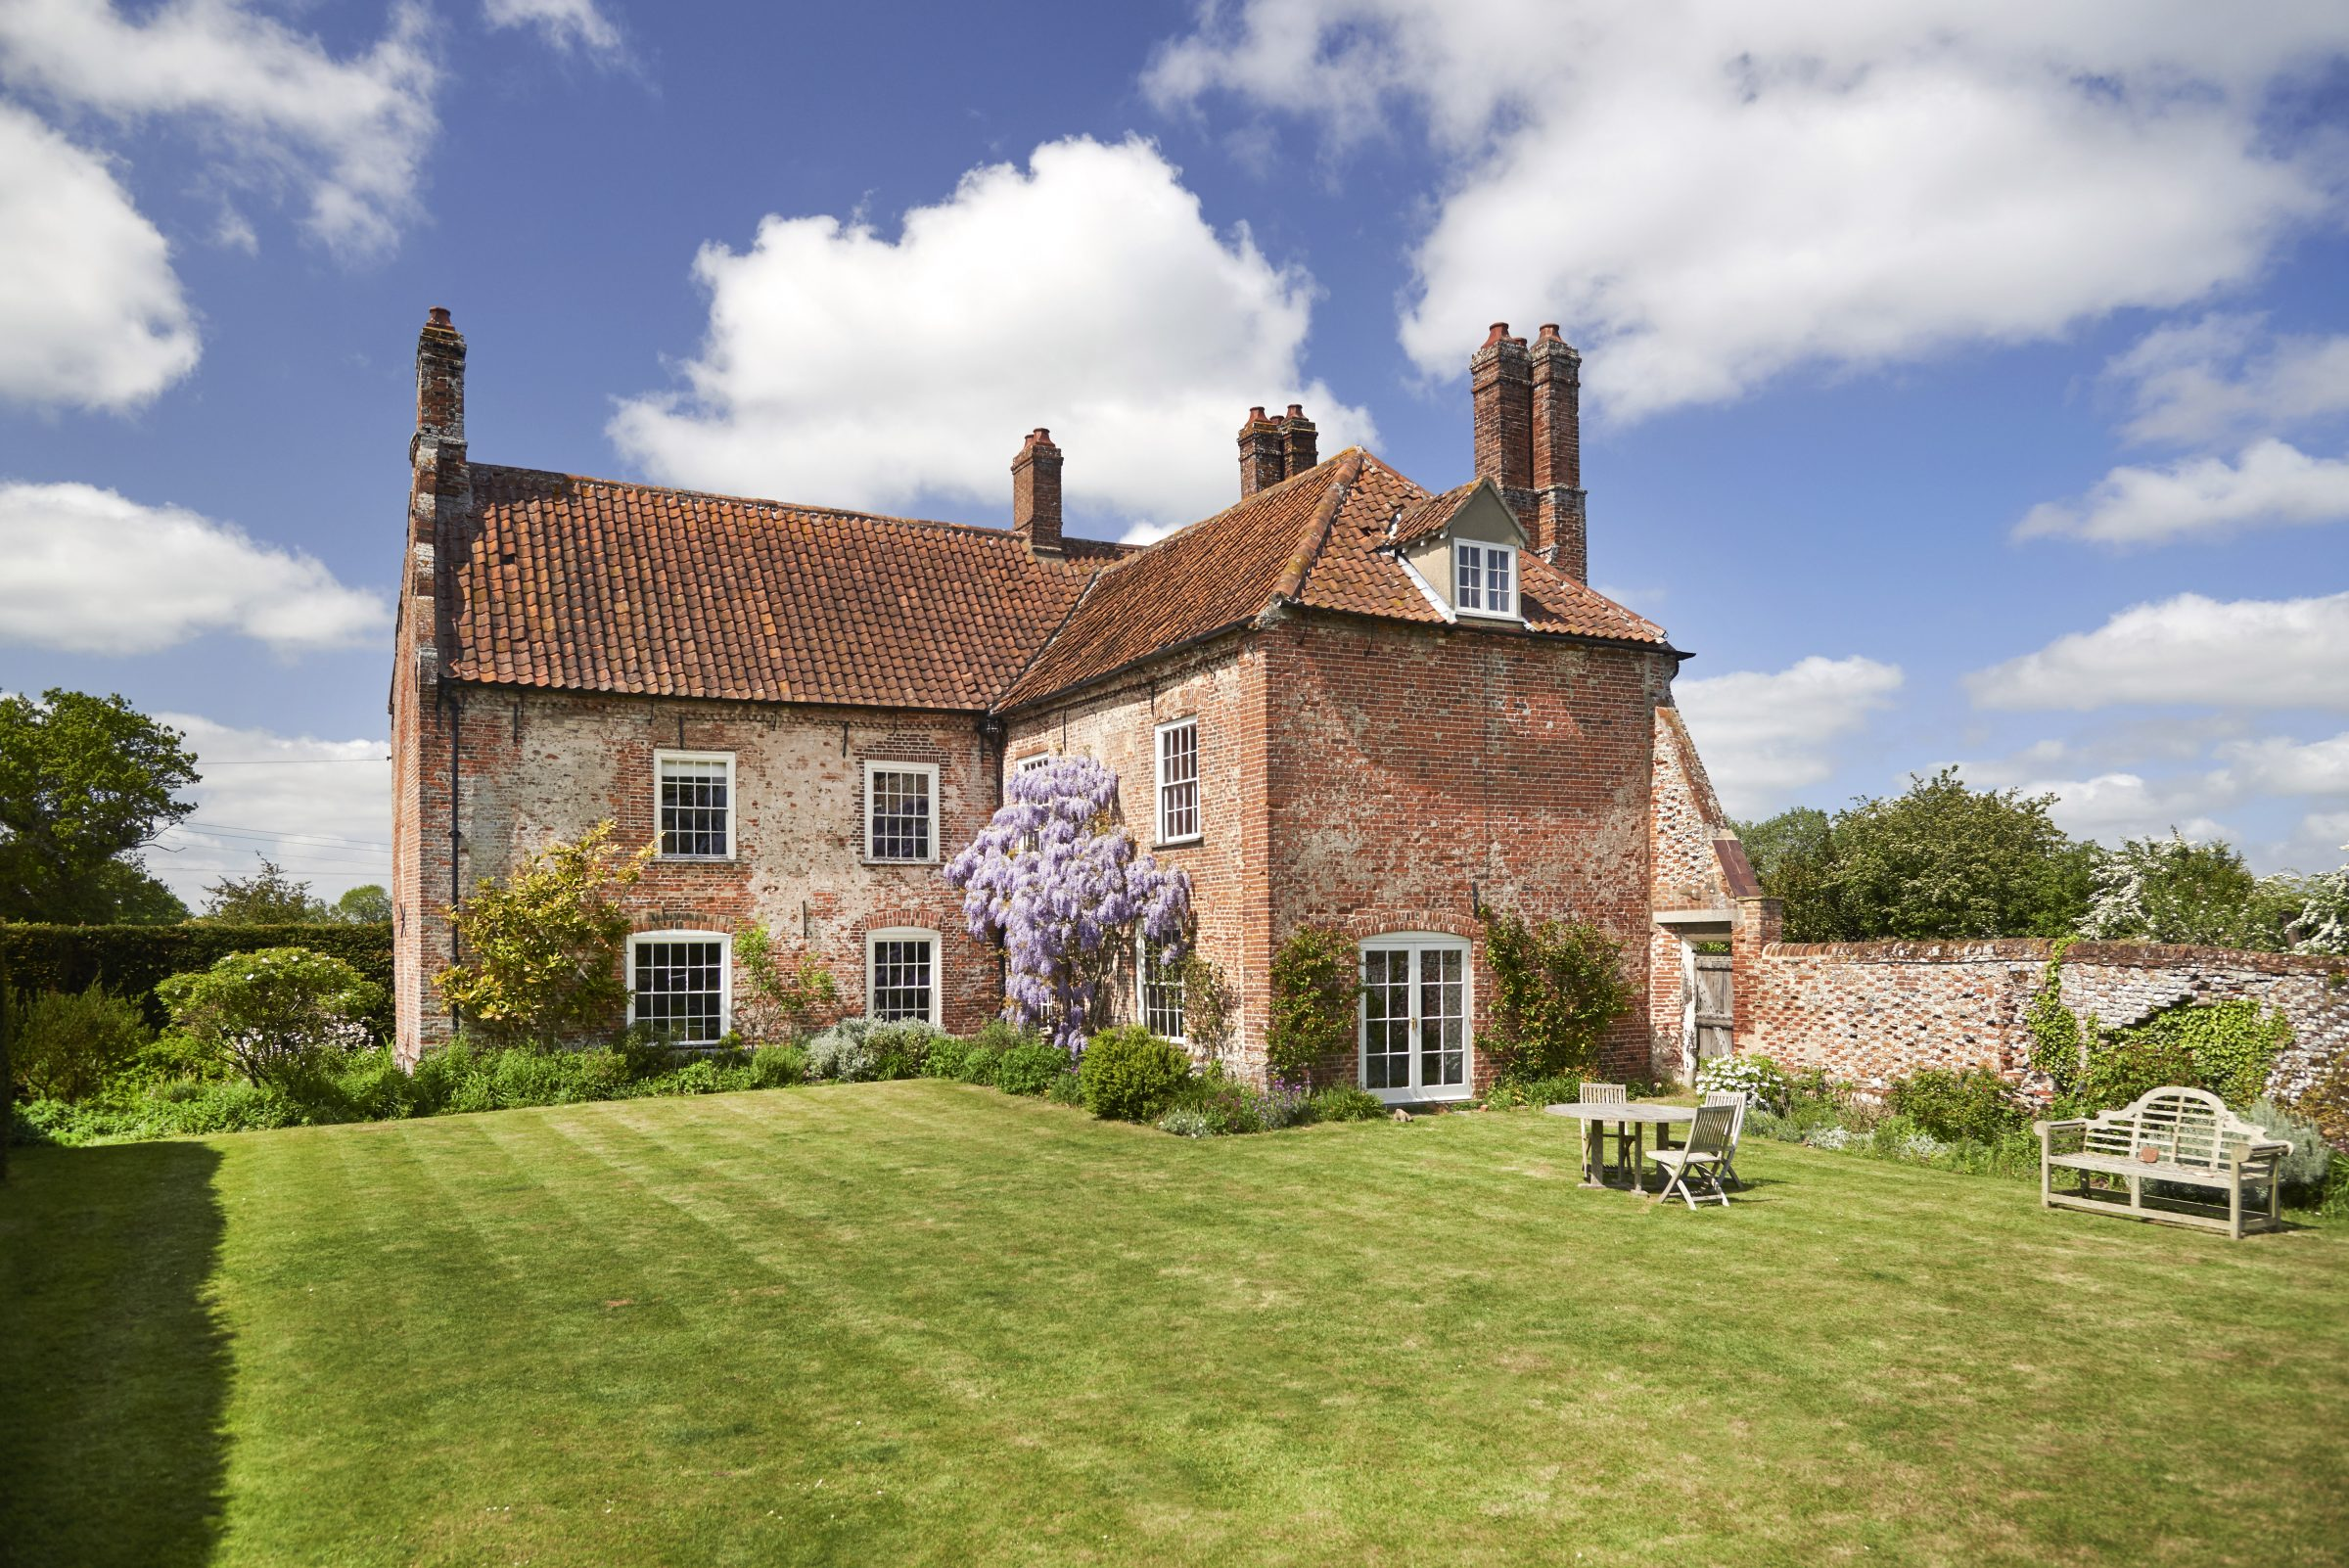 A wisteria-clad Suffolk farmhouse up for sale for the first time in two centuries - Country Life